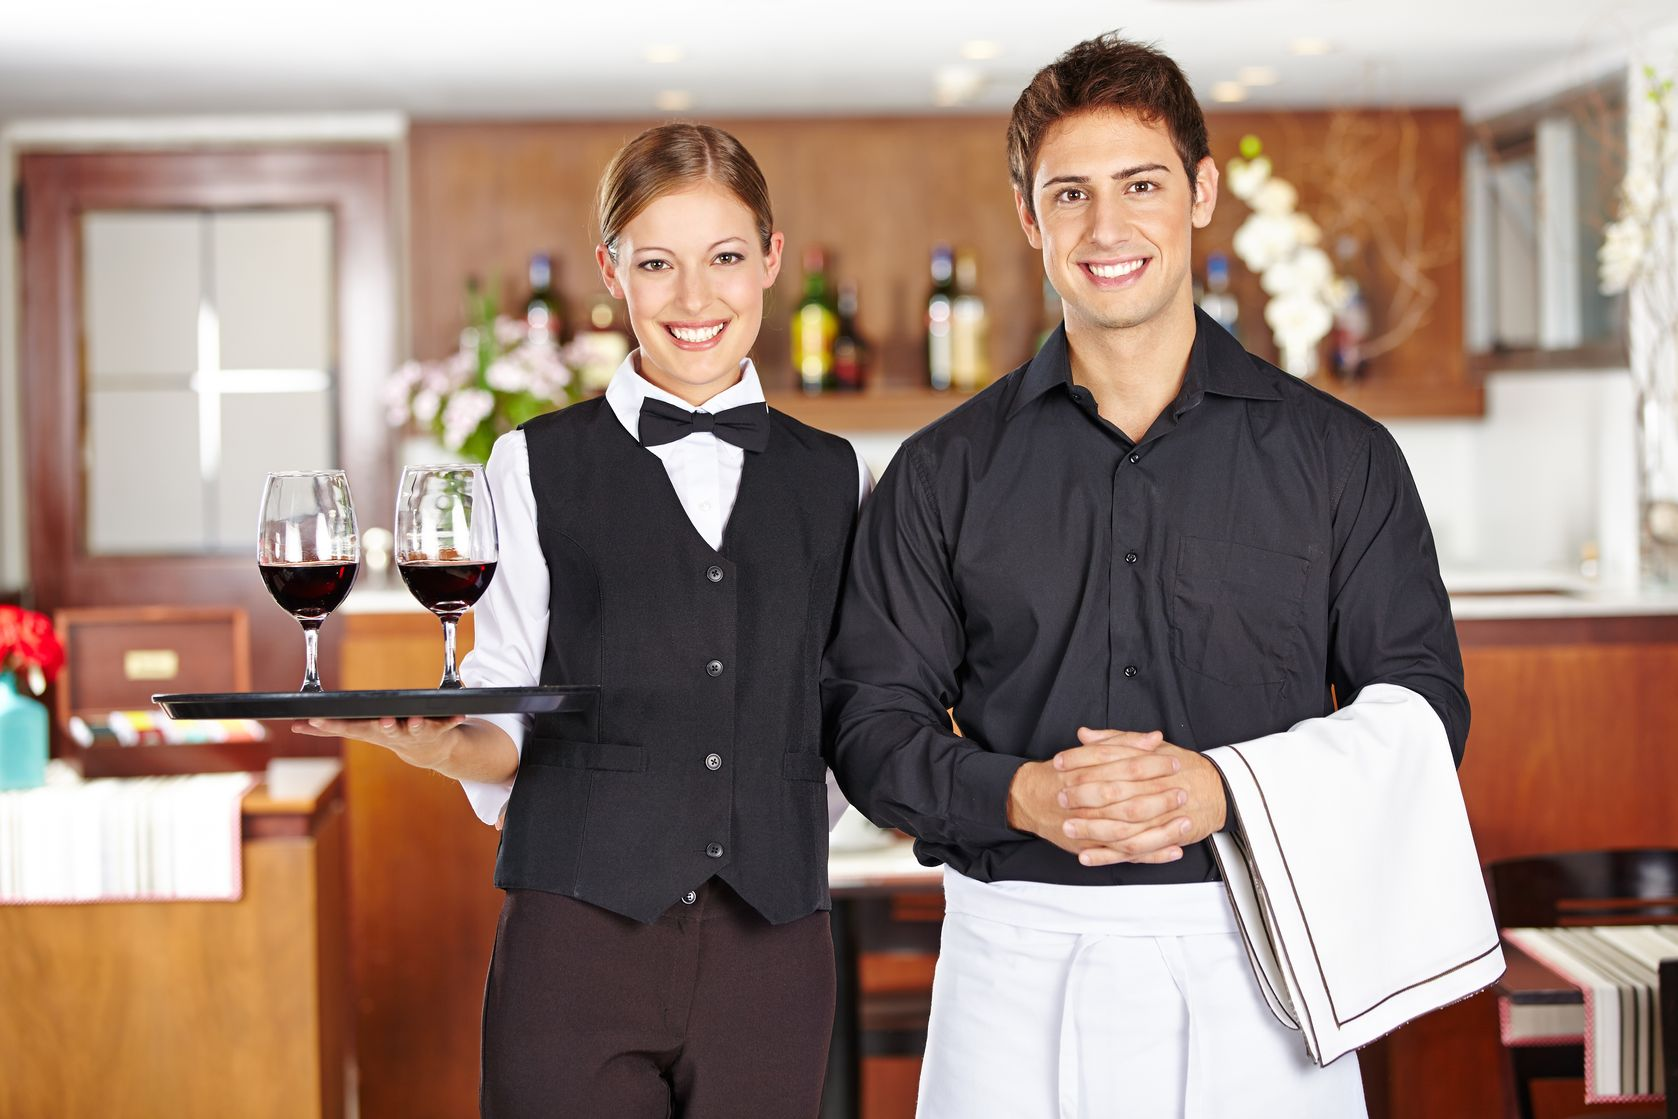 Hospitality and Catering Business for sale in Brisbane